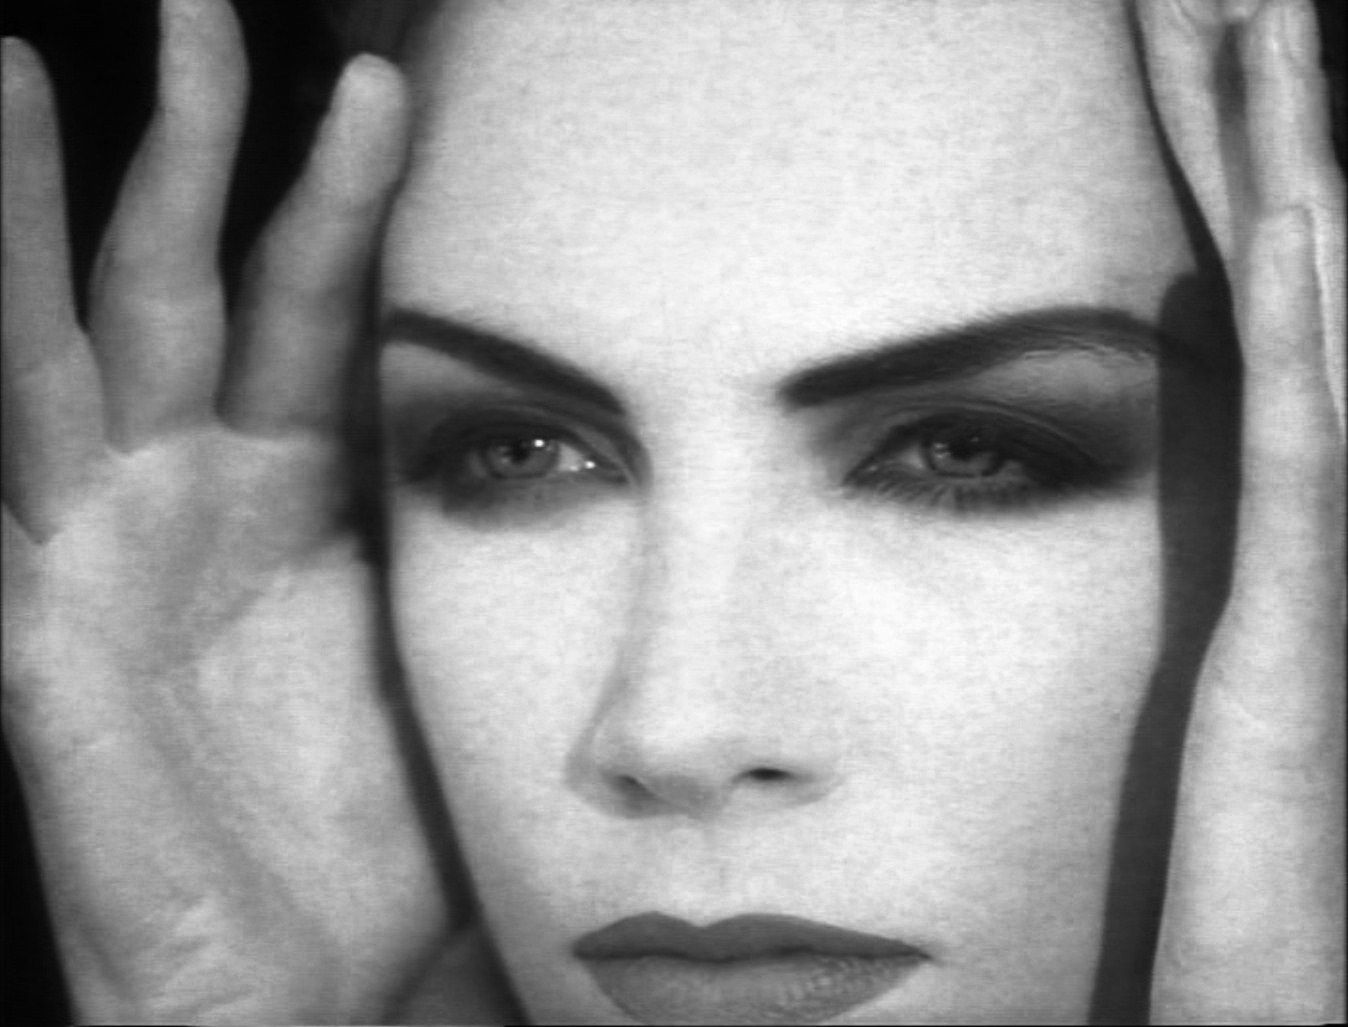 1000 ideas about annie lennox sweet dreams on pinterest annie lennox songs annie lennox and - Annie lennox diva ...